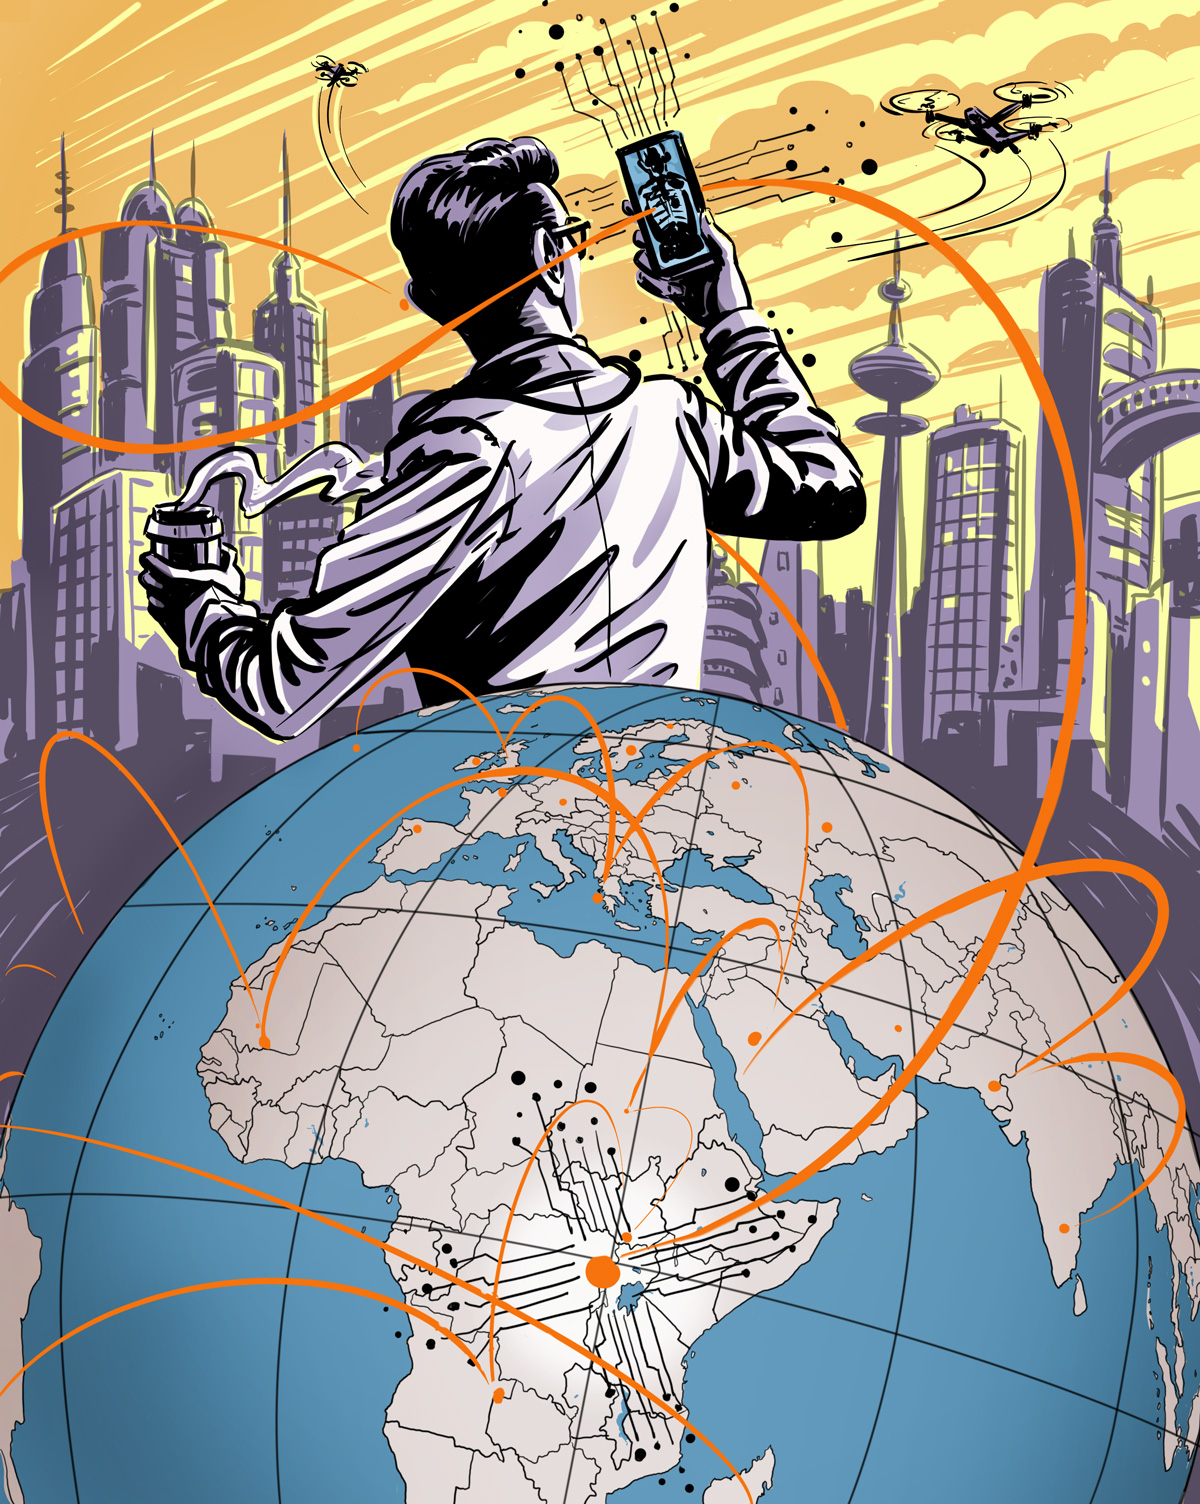 Comic book style illustration with globe in forground, modern urban city in background. Orange lines spring from dots around the globe and into the air. A mecial professional stands behind the globe, back turned, holding a coffee in one hand, looking at a phone in the other at unspecified health information. Drones and helicopters fly in the sky. City is drawn in light purple, sky is orange and yellow.